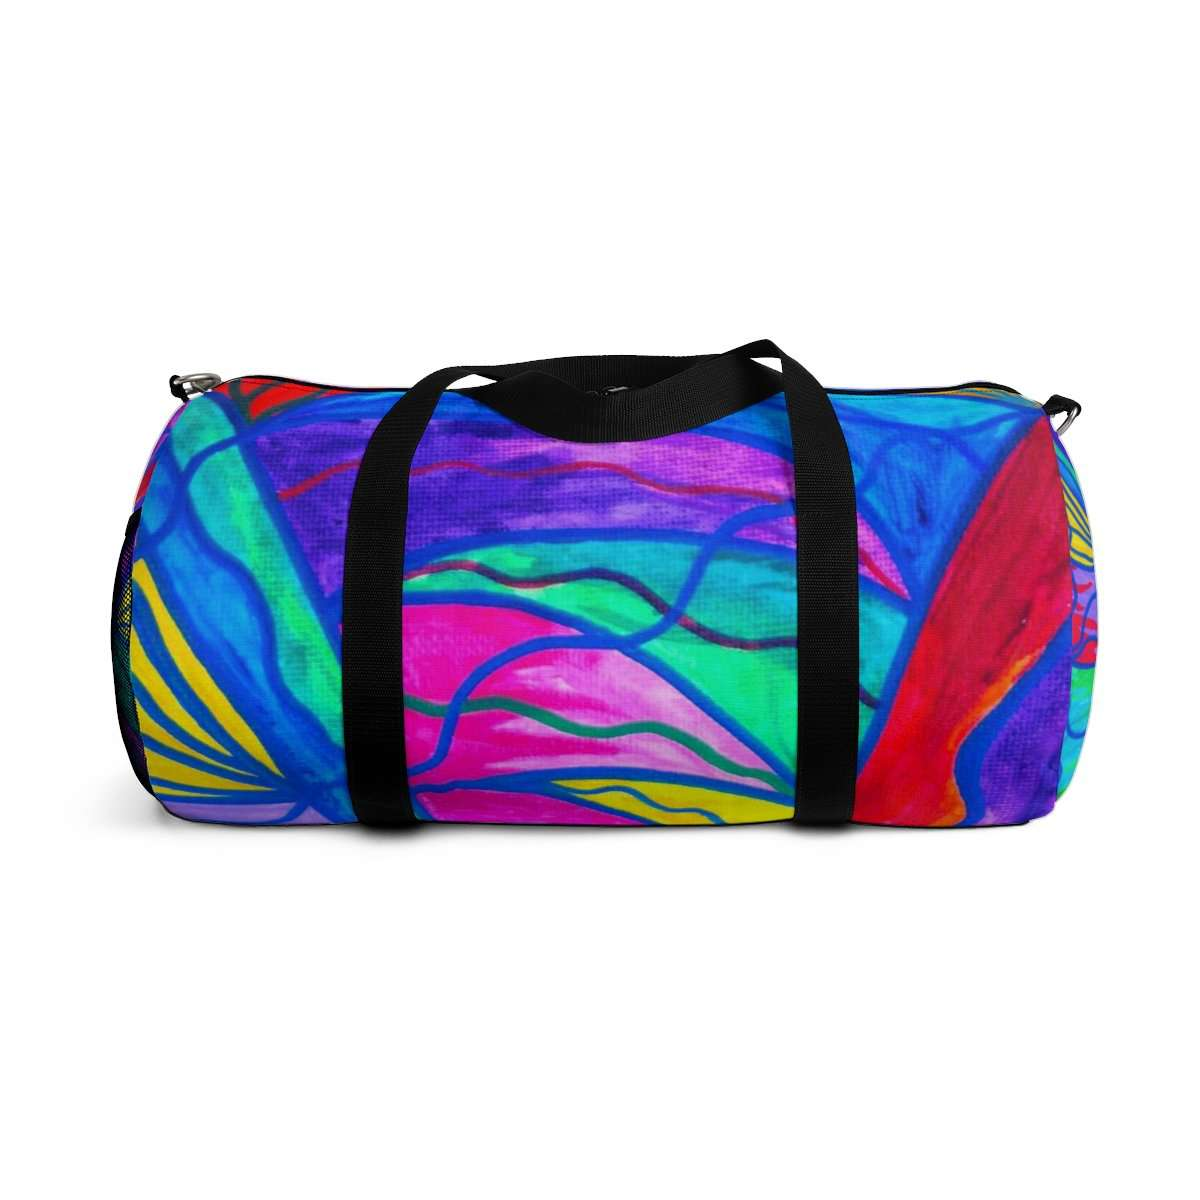 Drastic Change - Duffle Bag